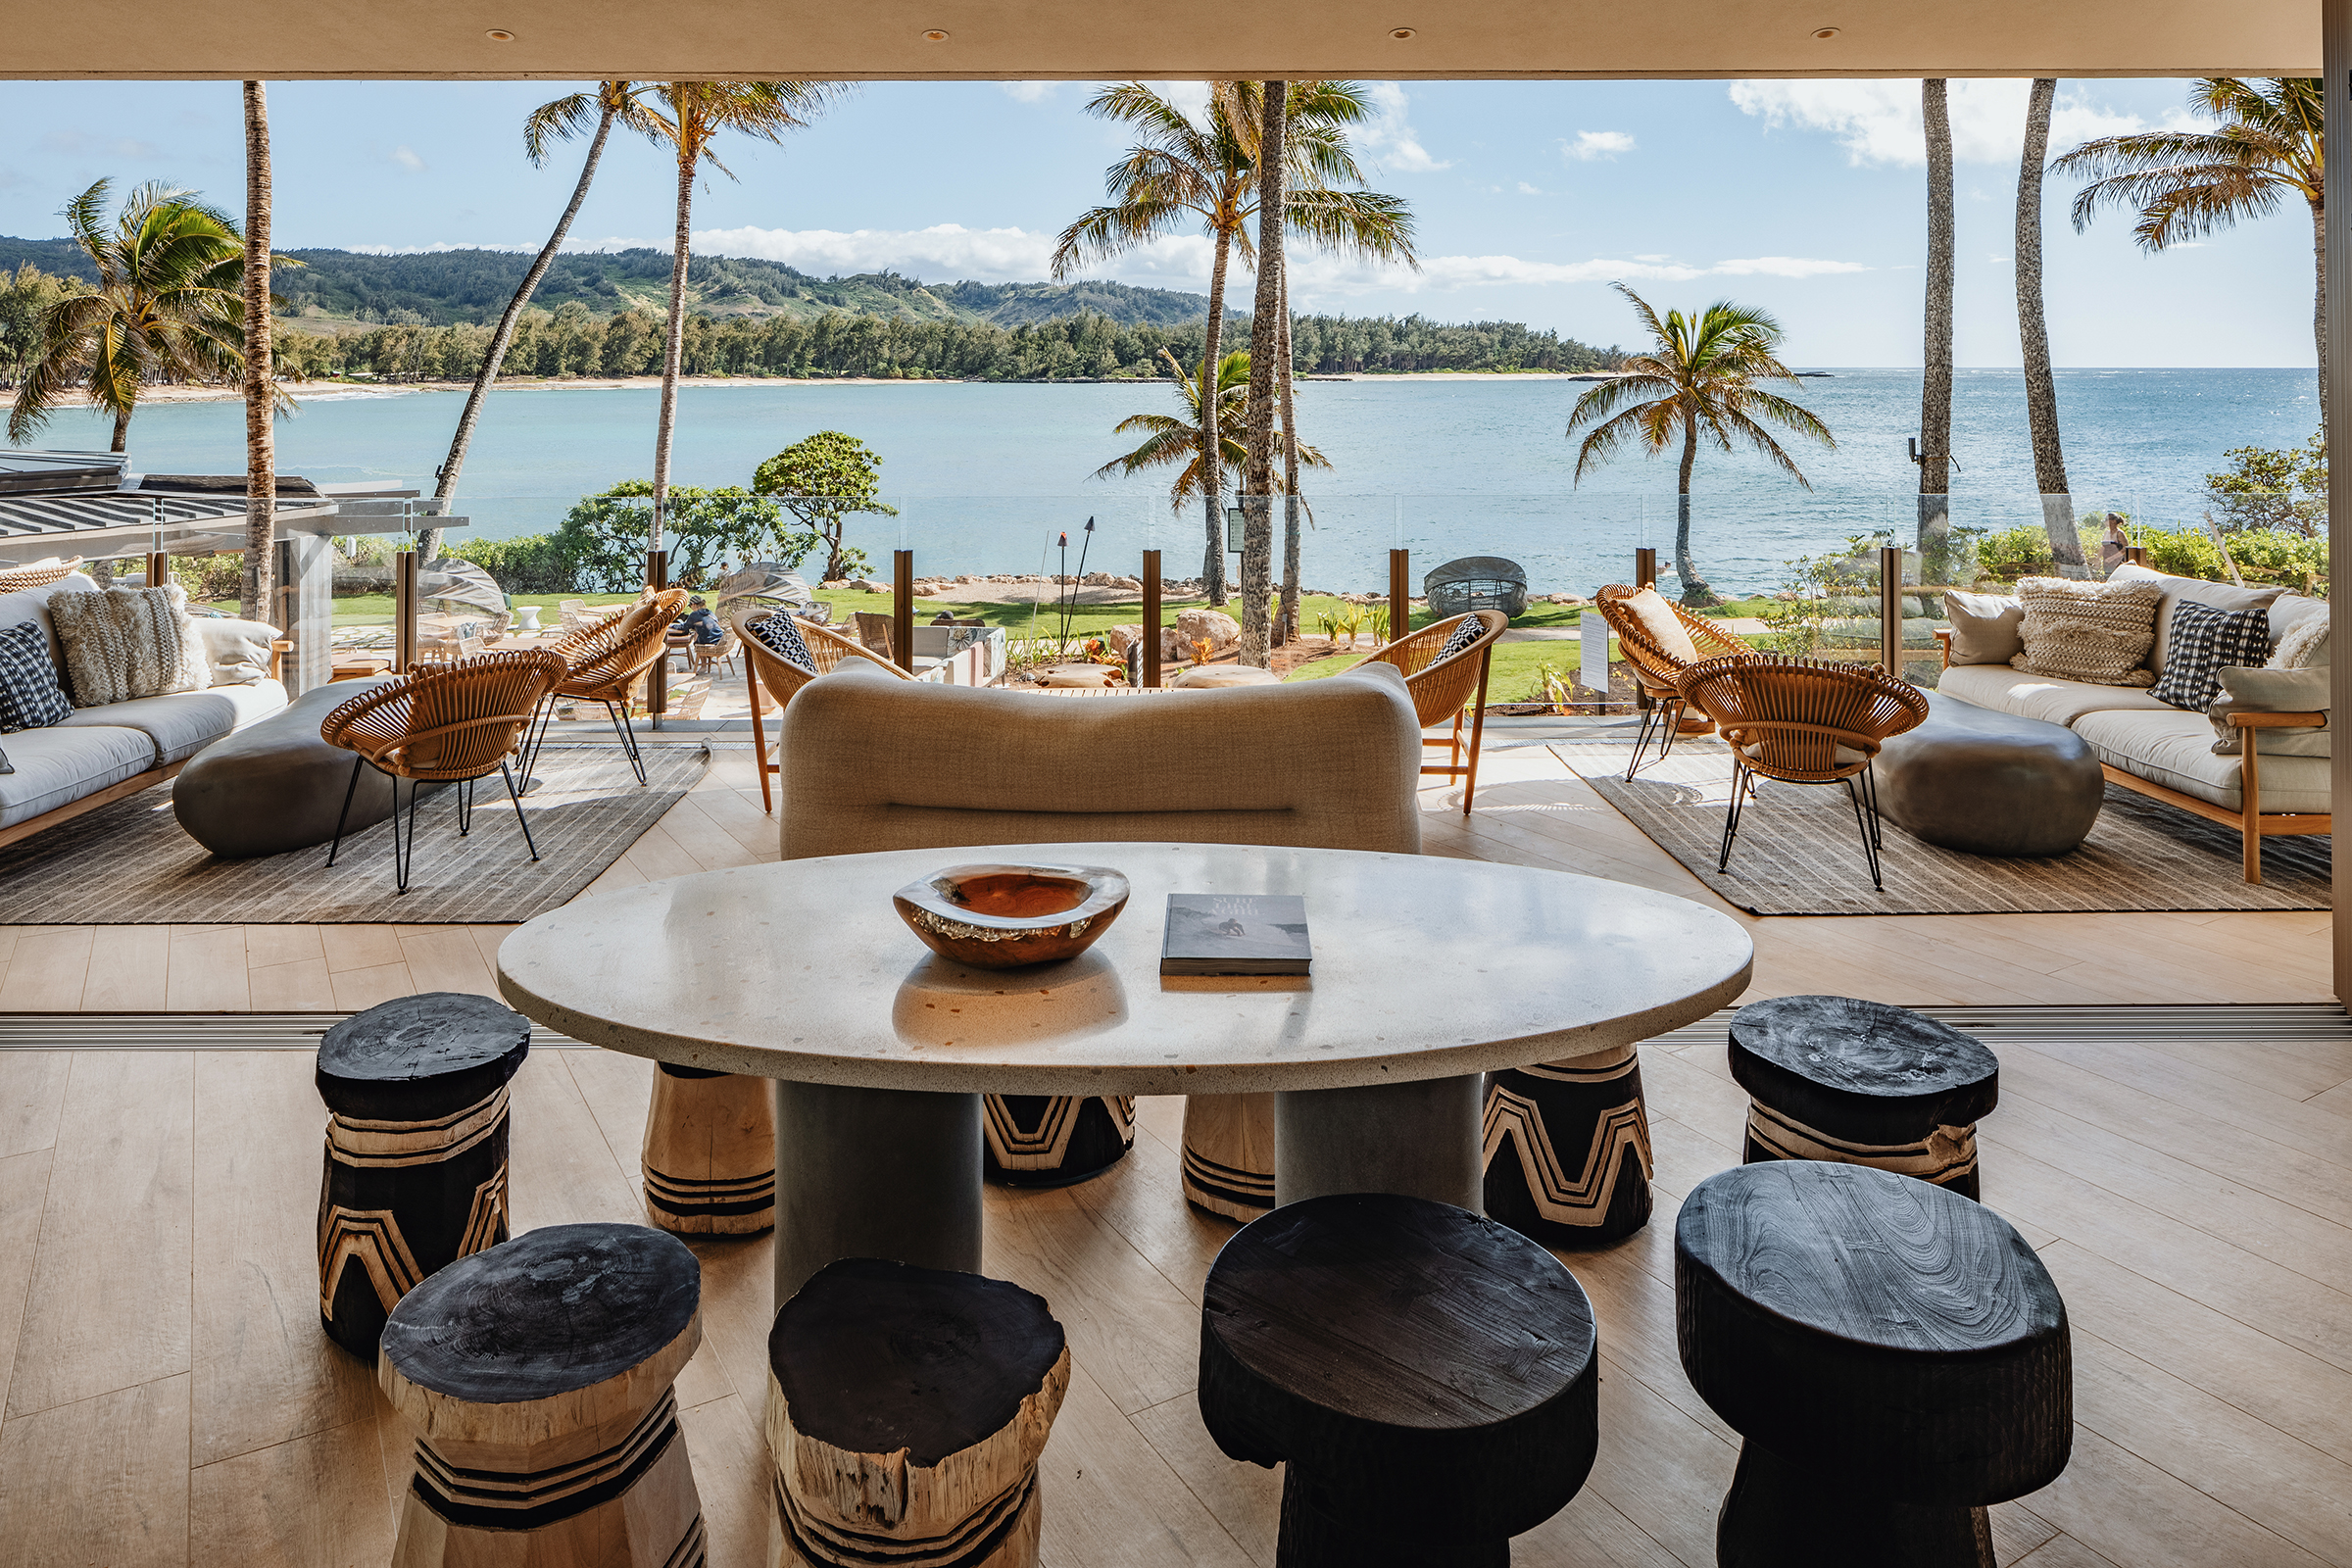 The view from the Ocean Club, one of the restaurants at the remodeled Turtle Bay Resort in Oahu